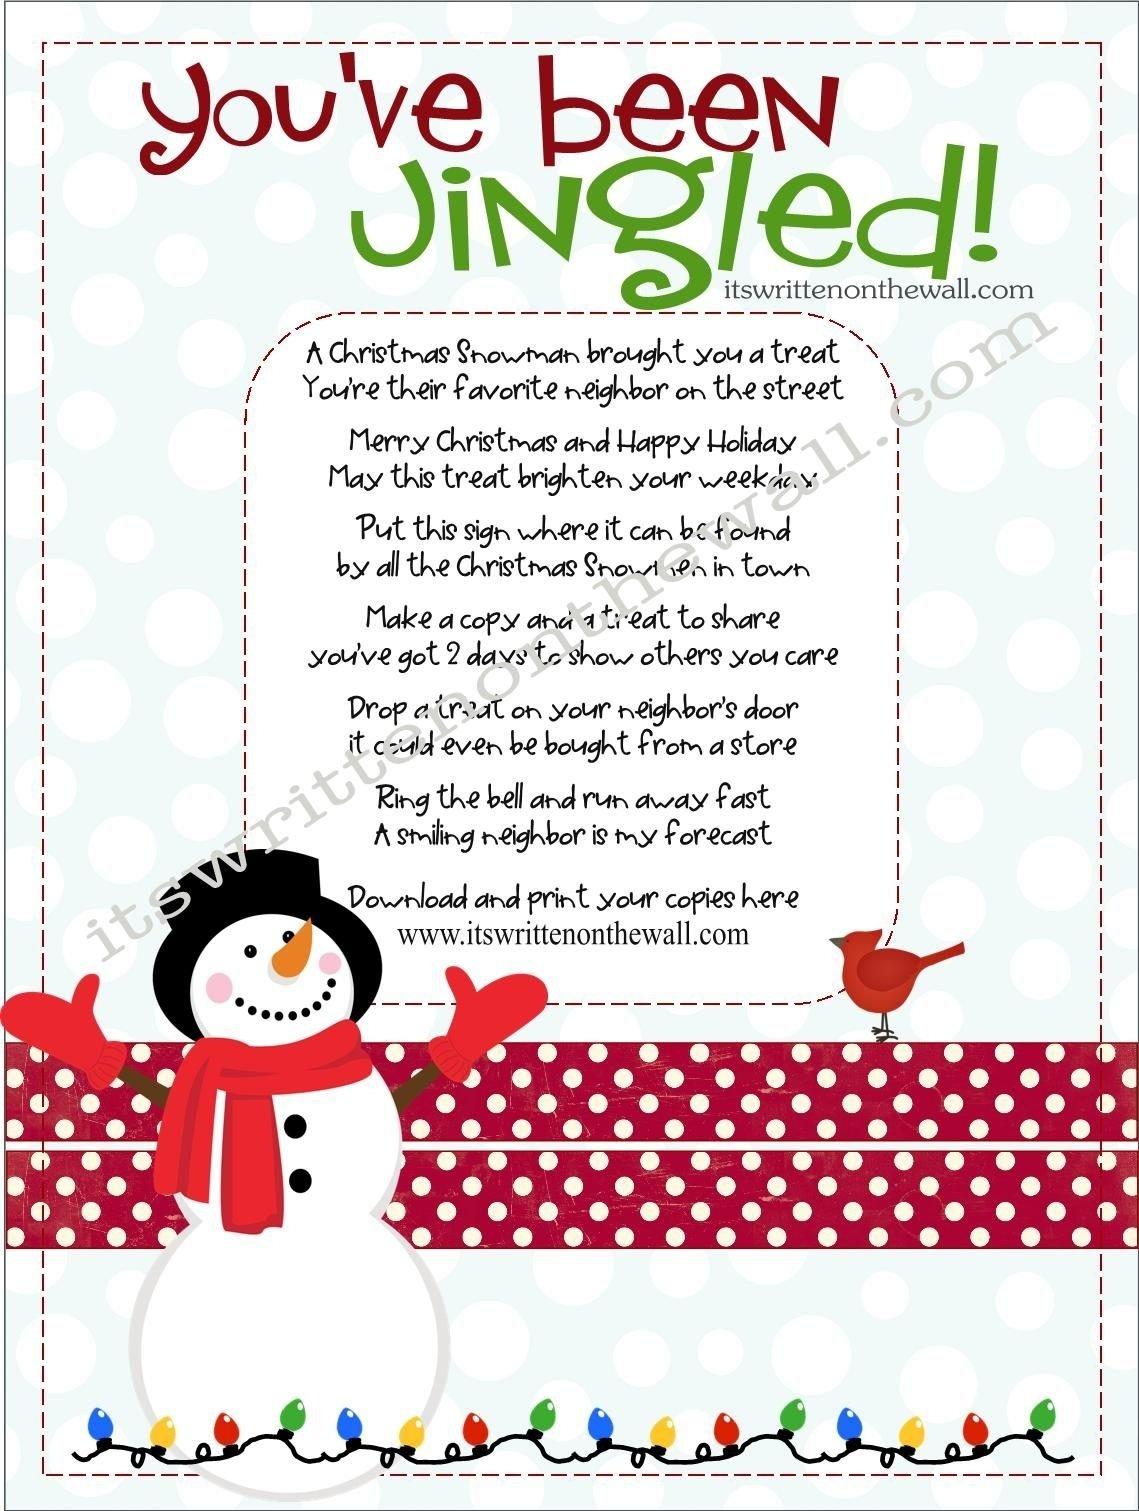 10 Gorgeous Christmas Family Gift Exchange Ideas its written on the wall christmas youve been jingled cute way 2 2020